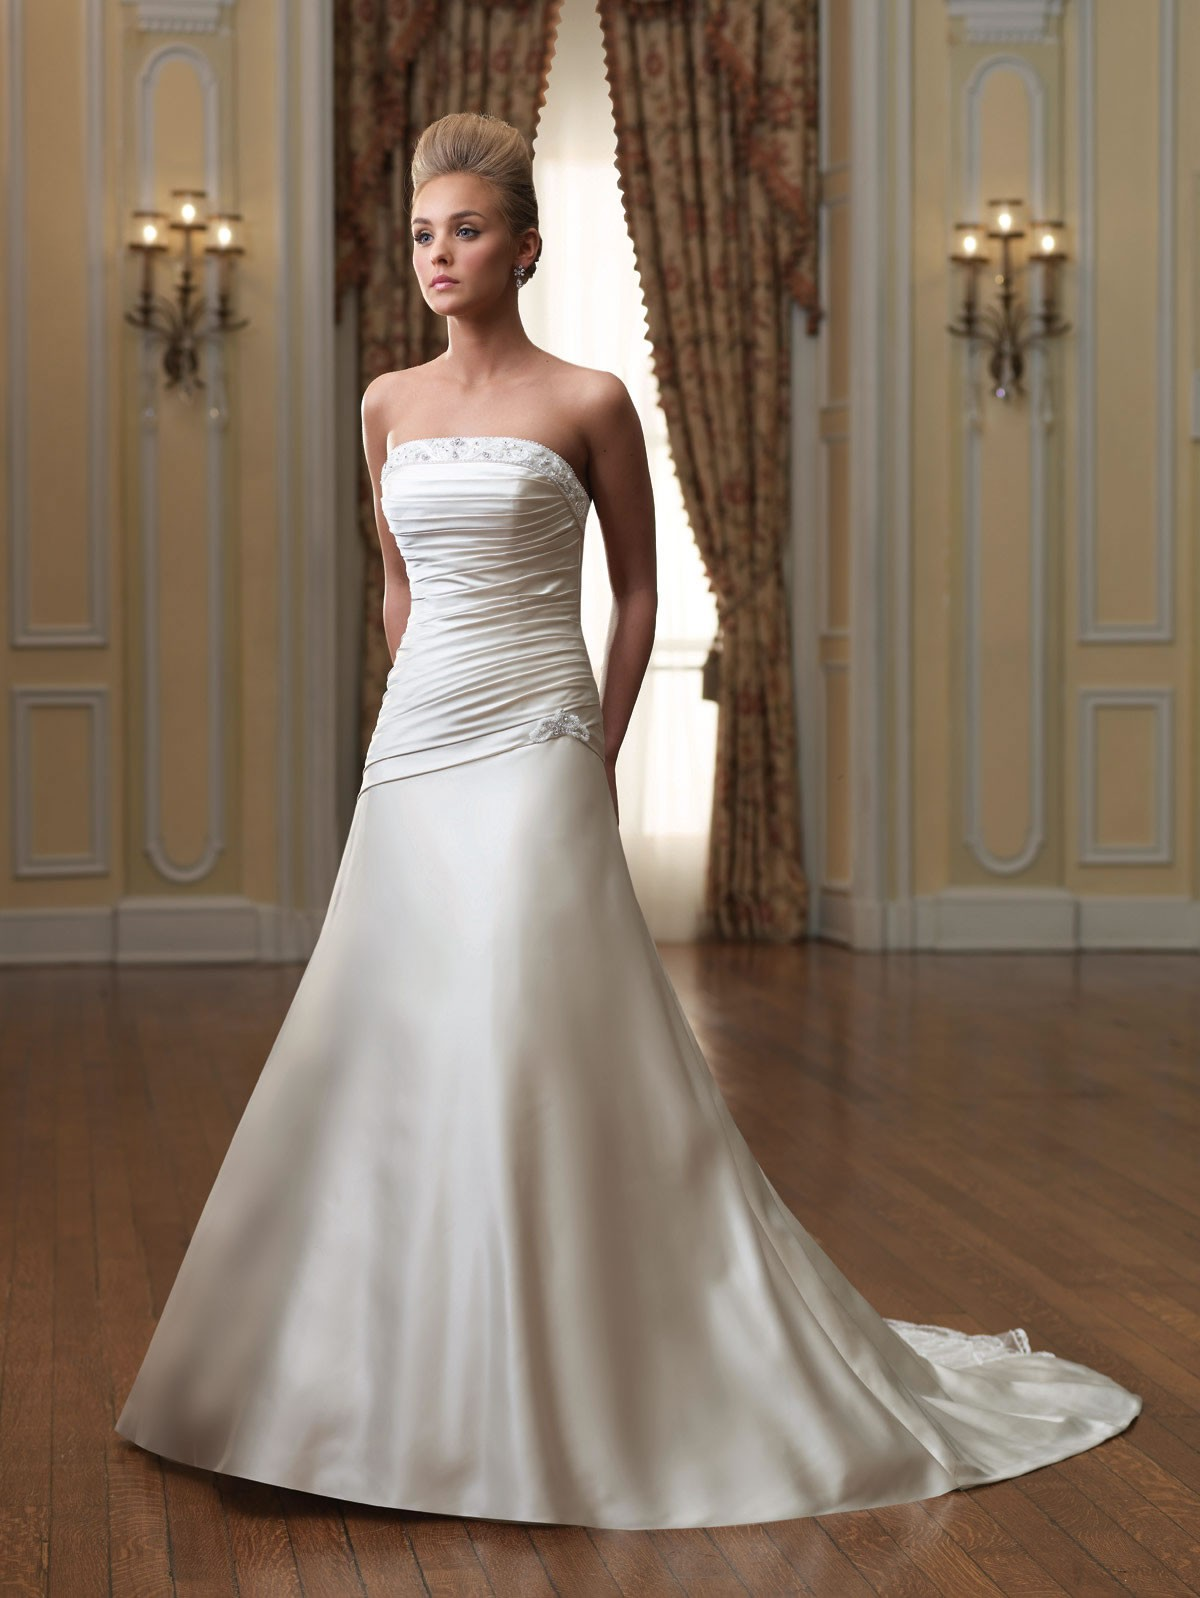 Collection Strapless Wedding Gown Pictures - Weddings Pro